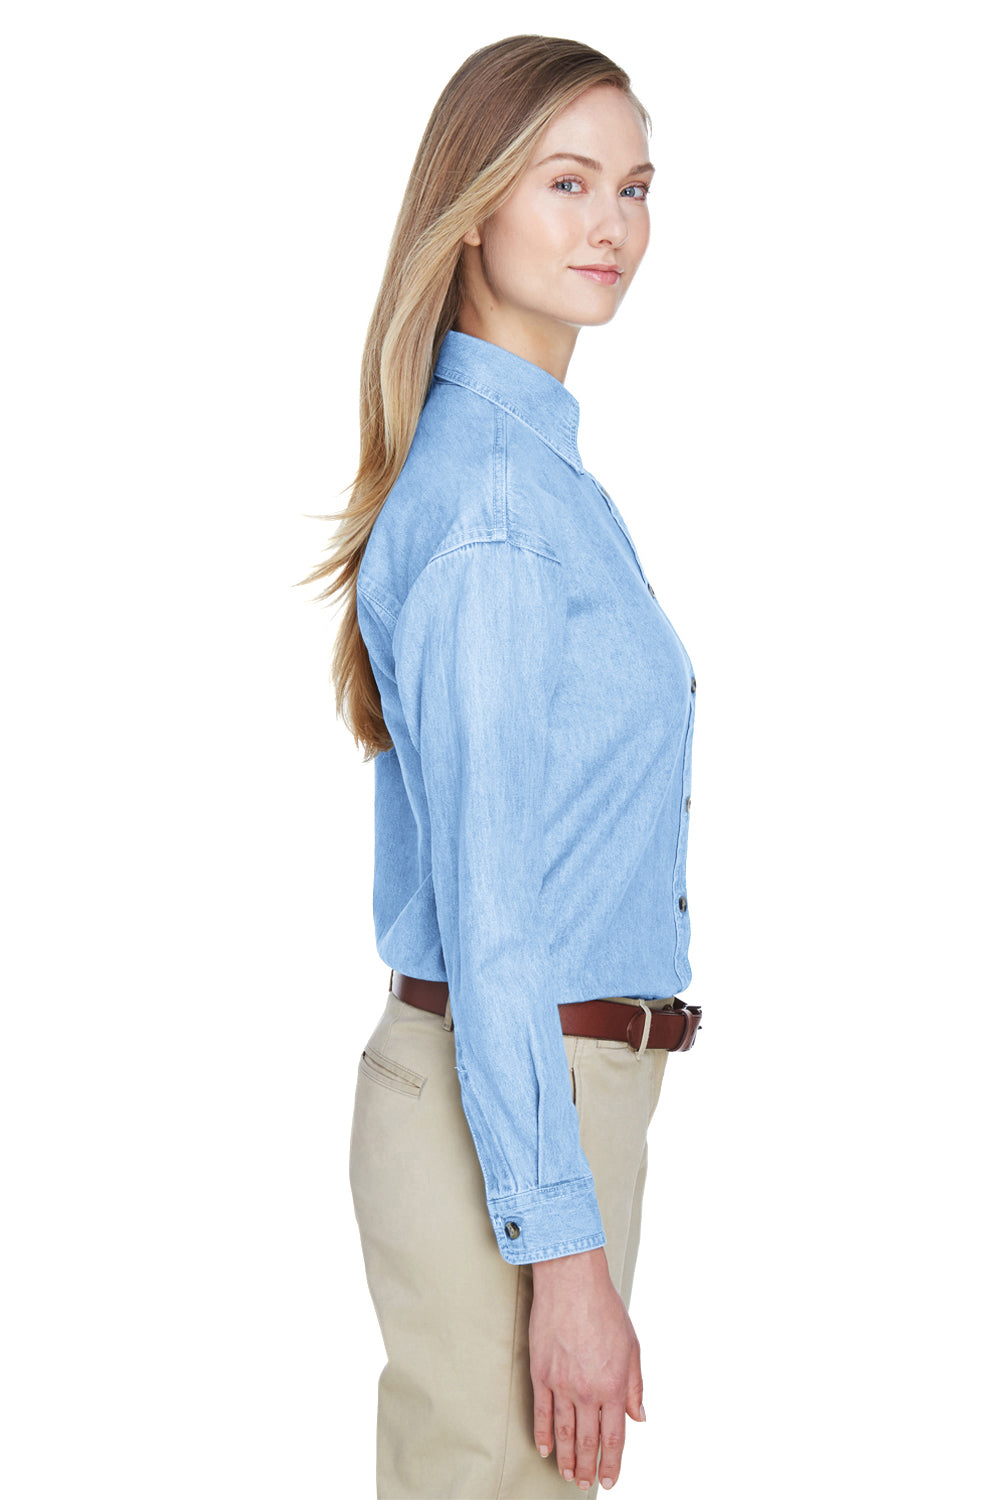 UltraClub 8966 Womens Cypress Denim Long Sleeve Button Down Shirt Light Blue Side